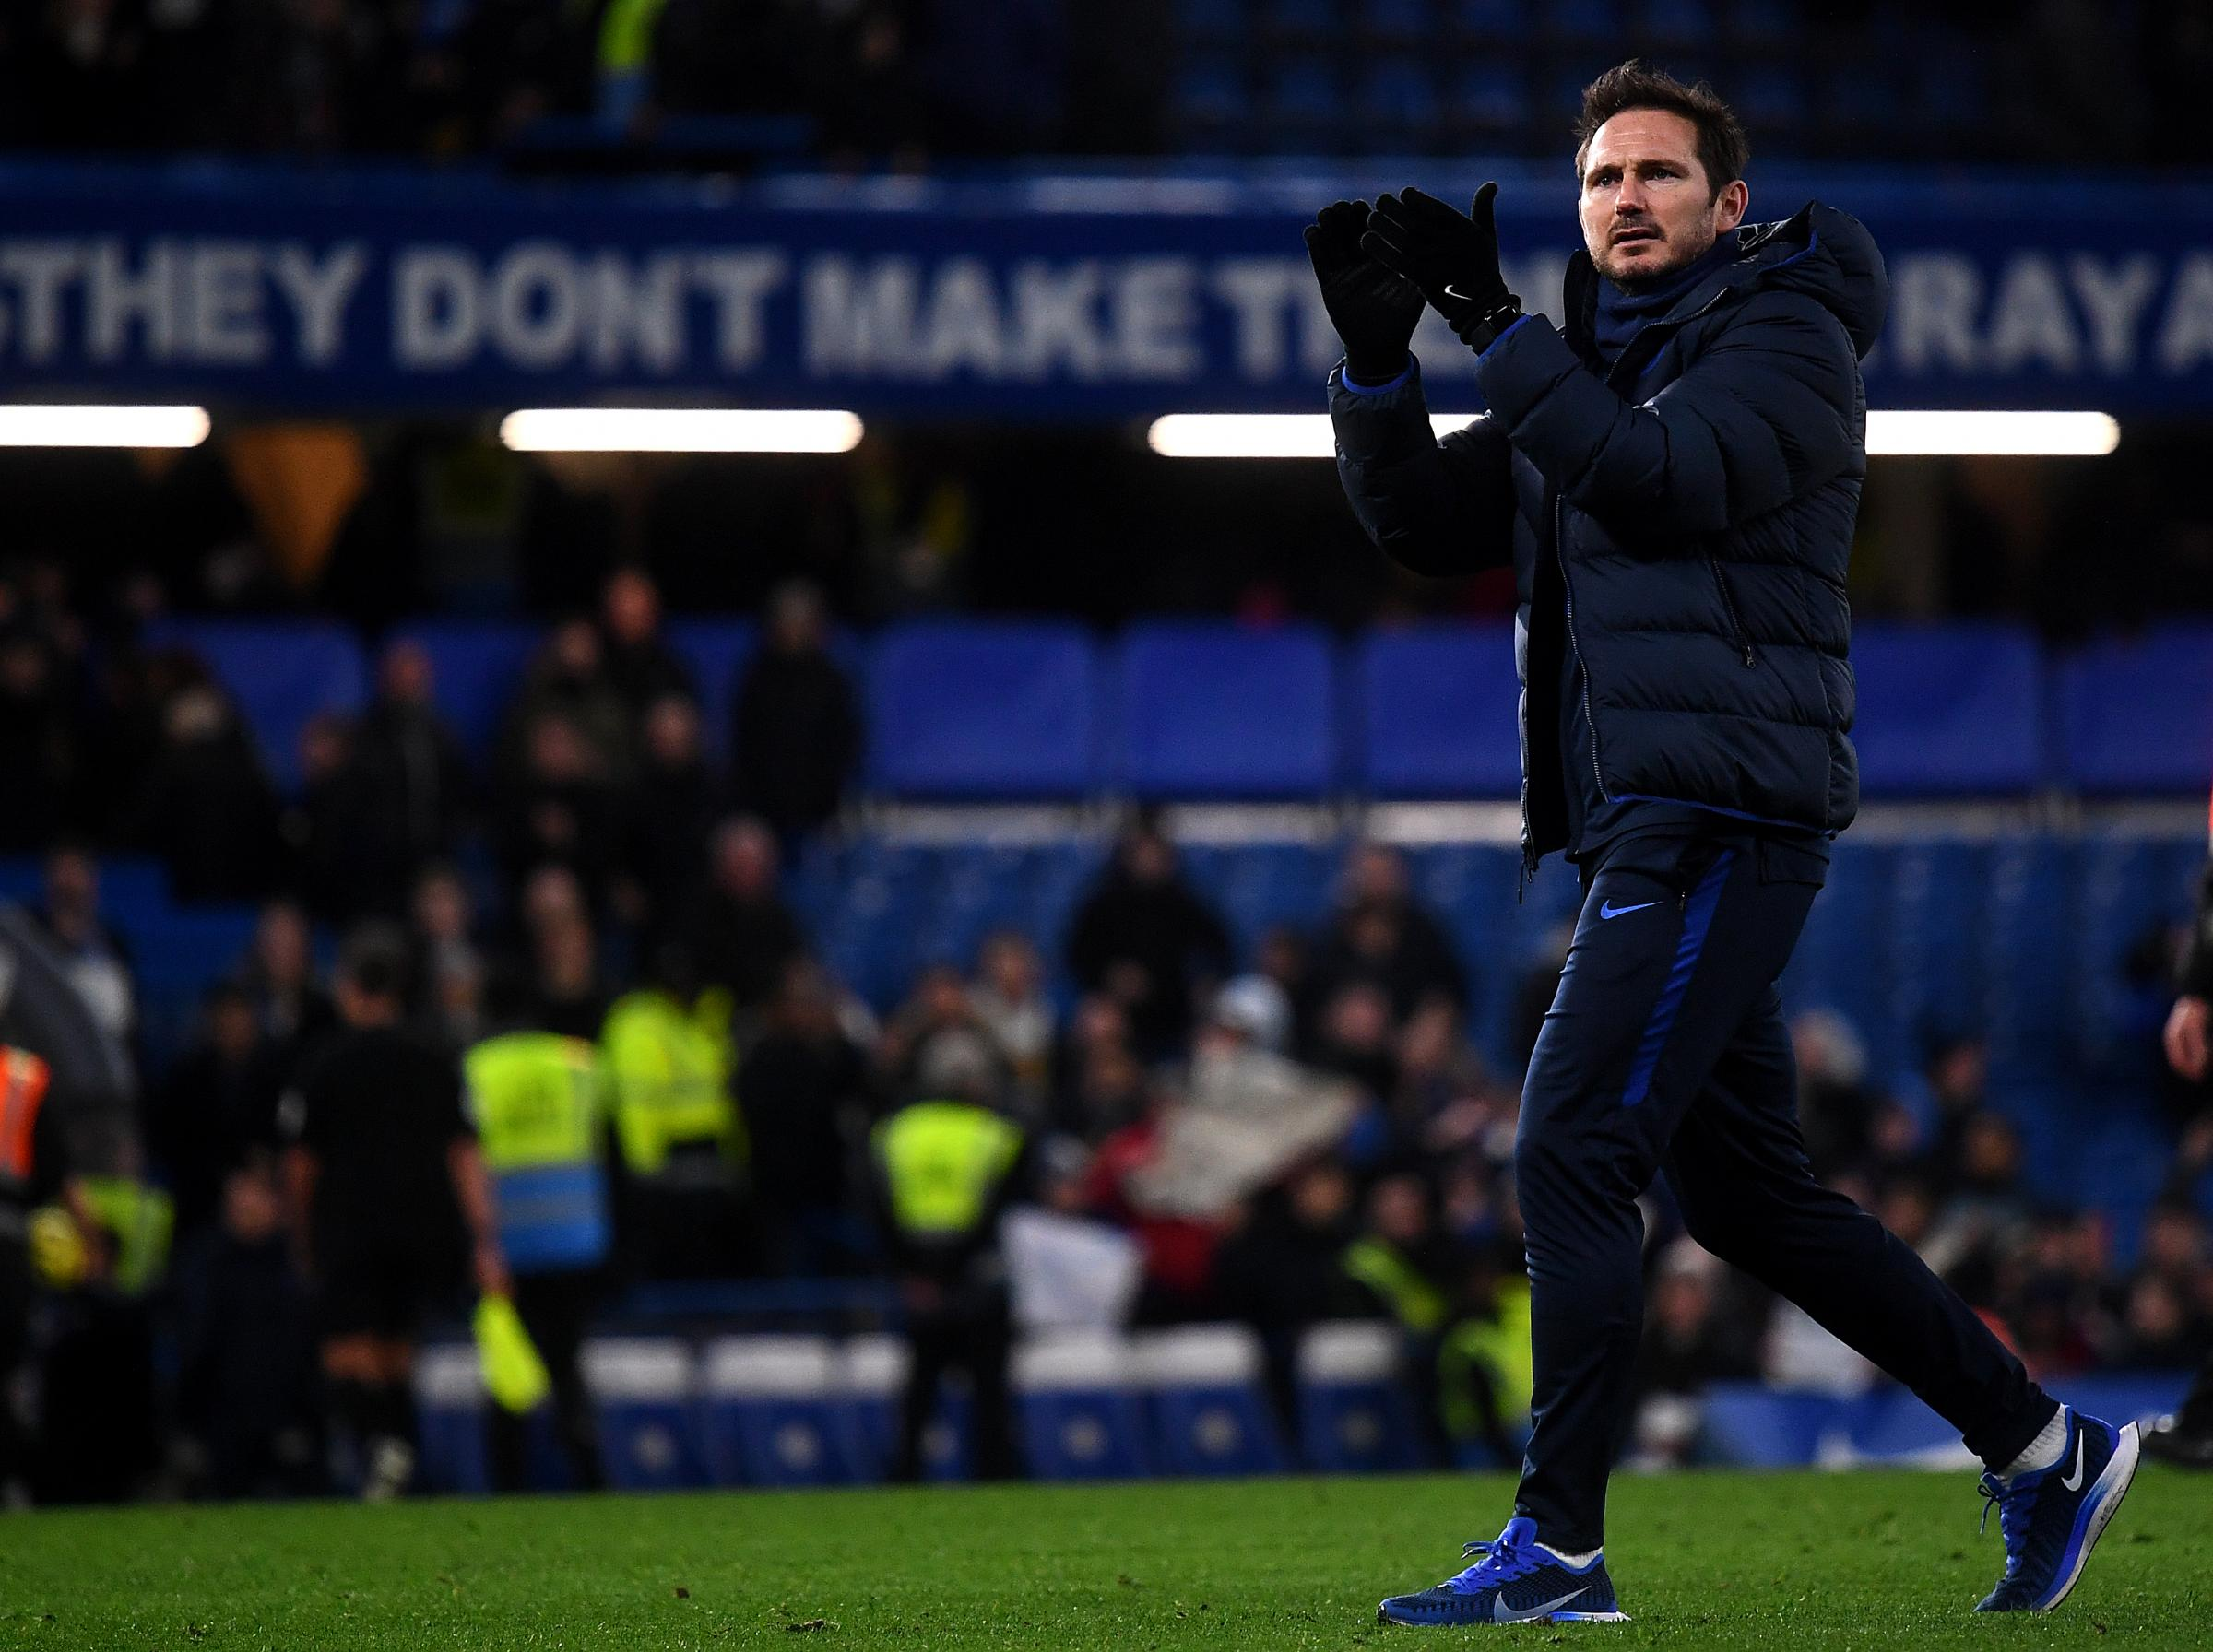 Frank Lampard on key to Chelsea's victory over Burnley